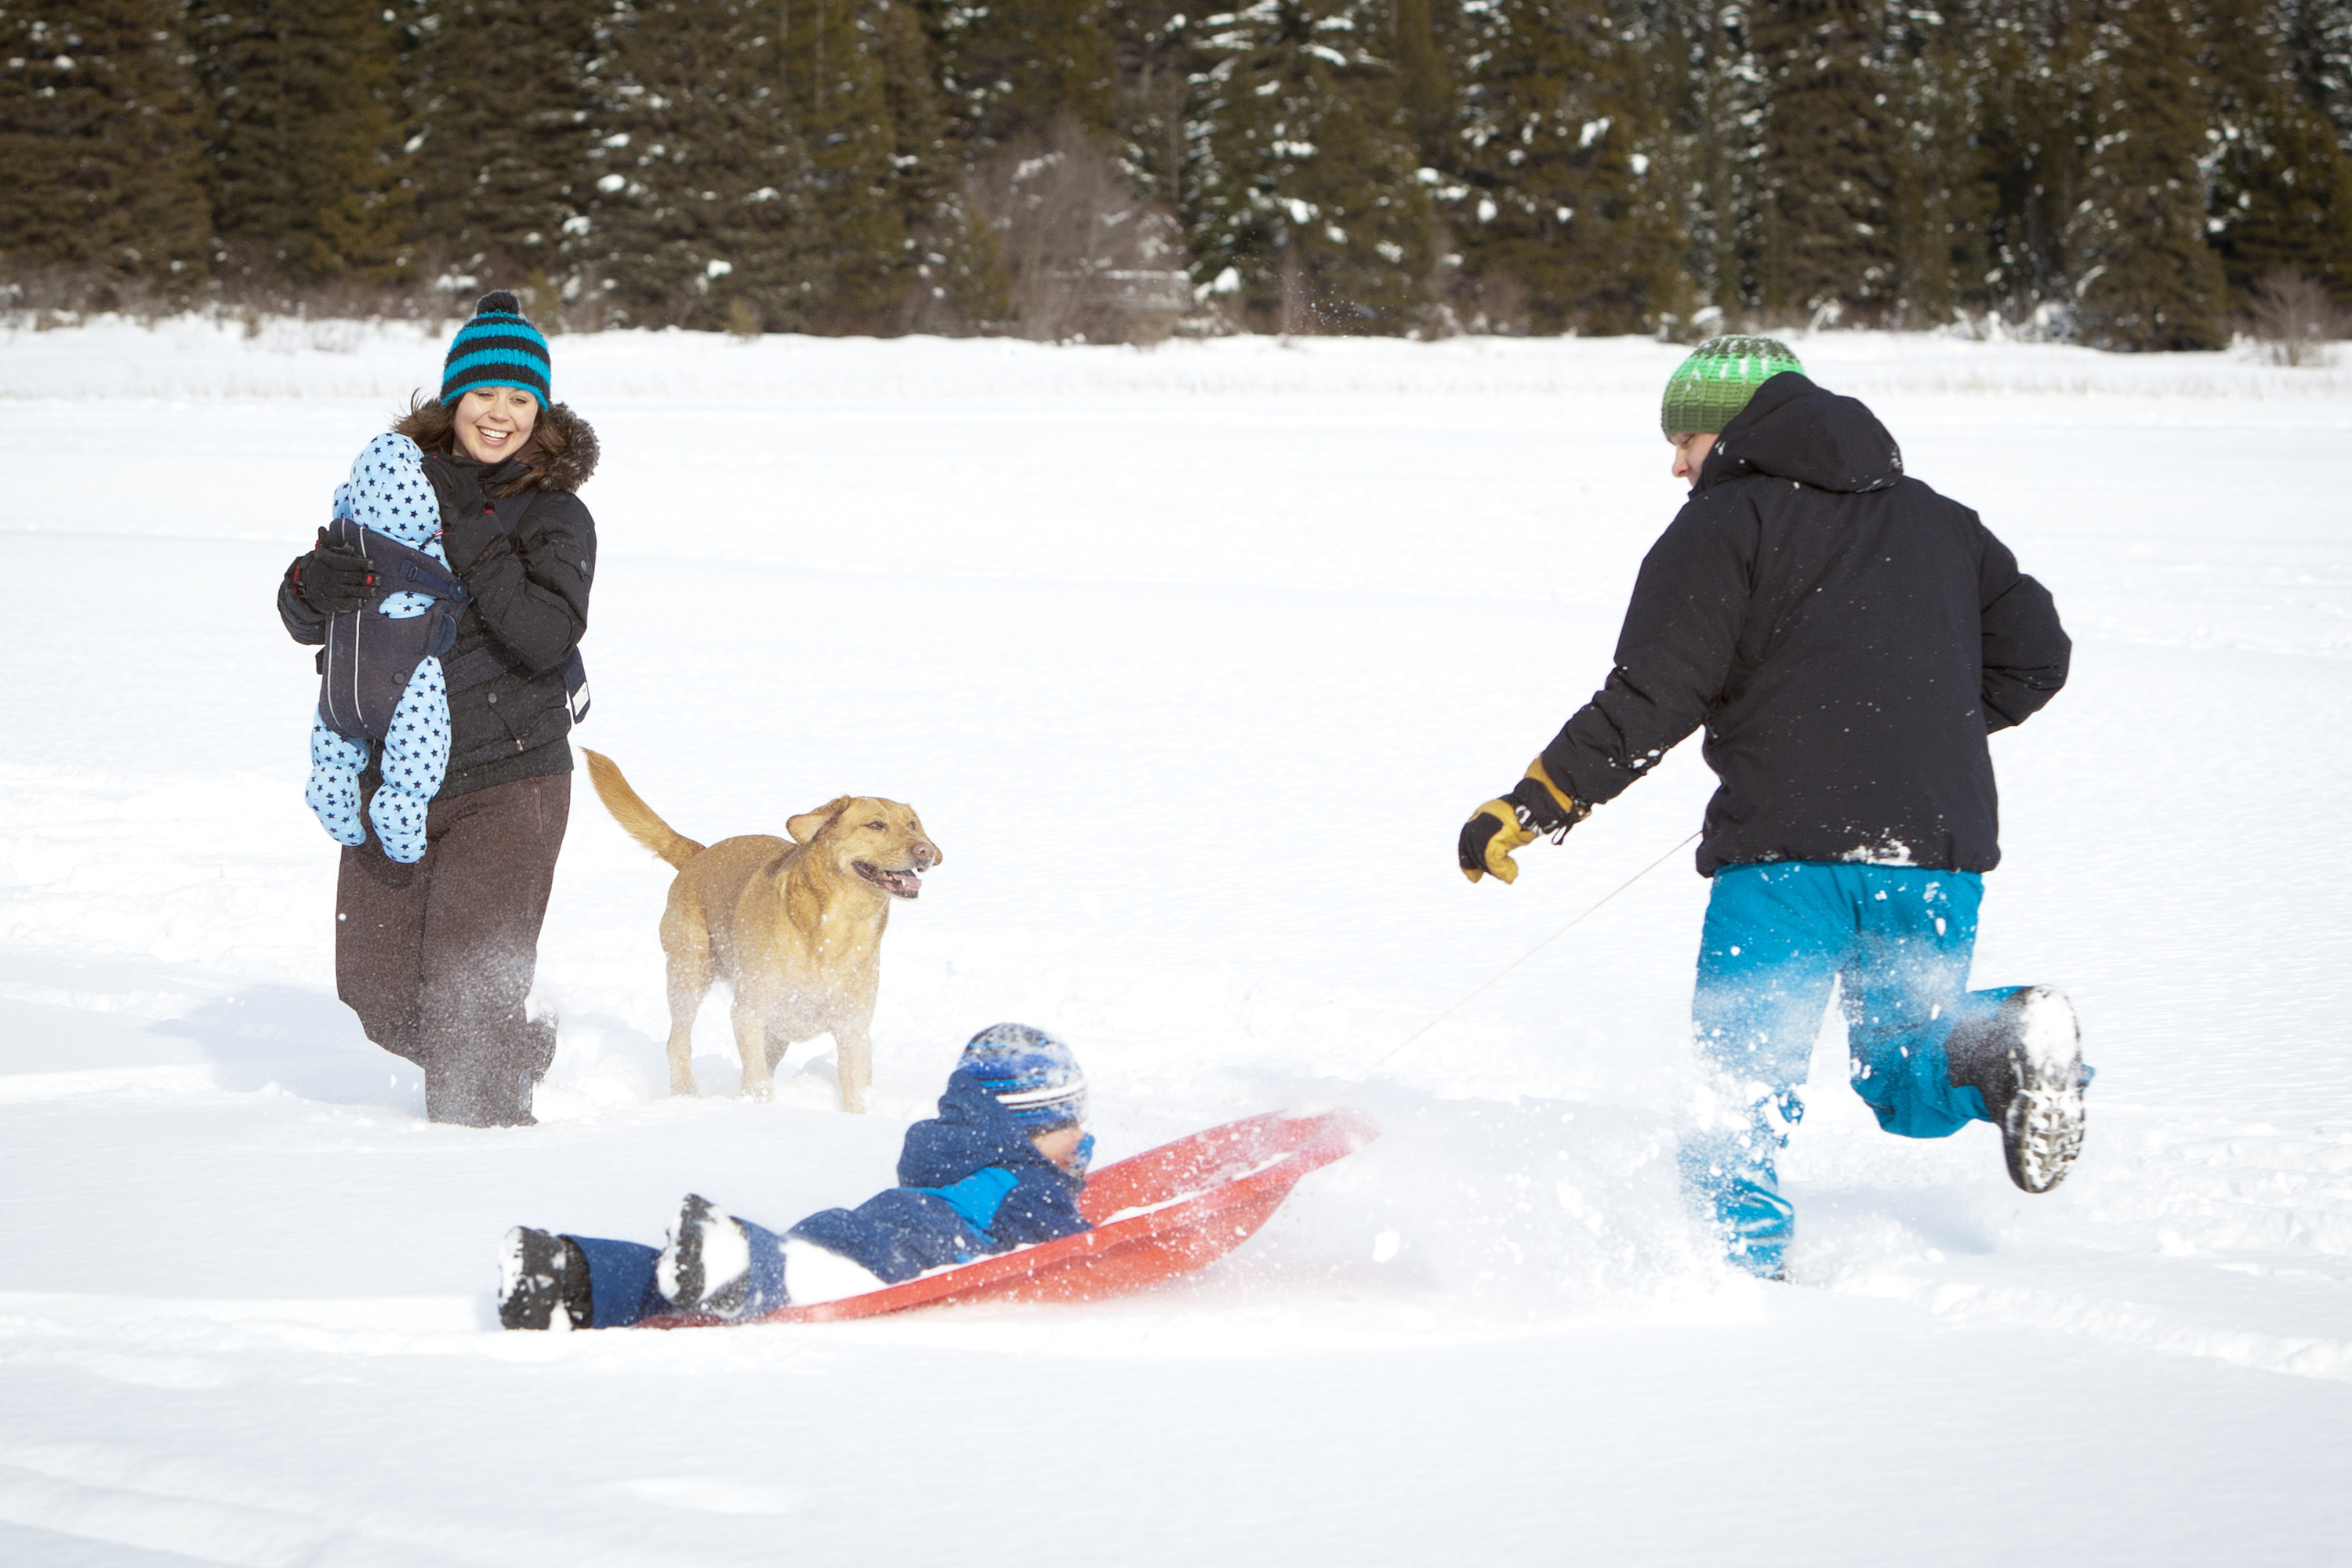 Parents with two small boys and dog enjoying winter outside.